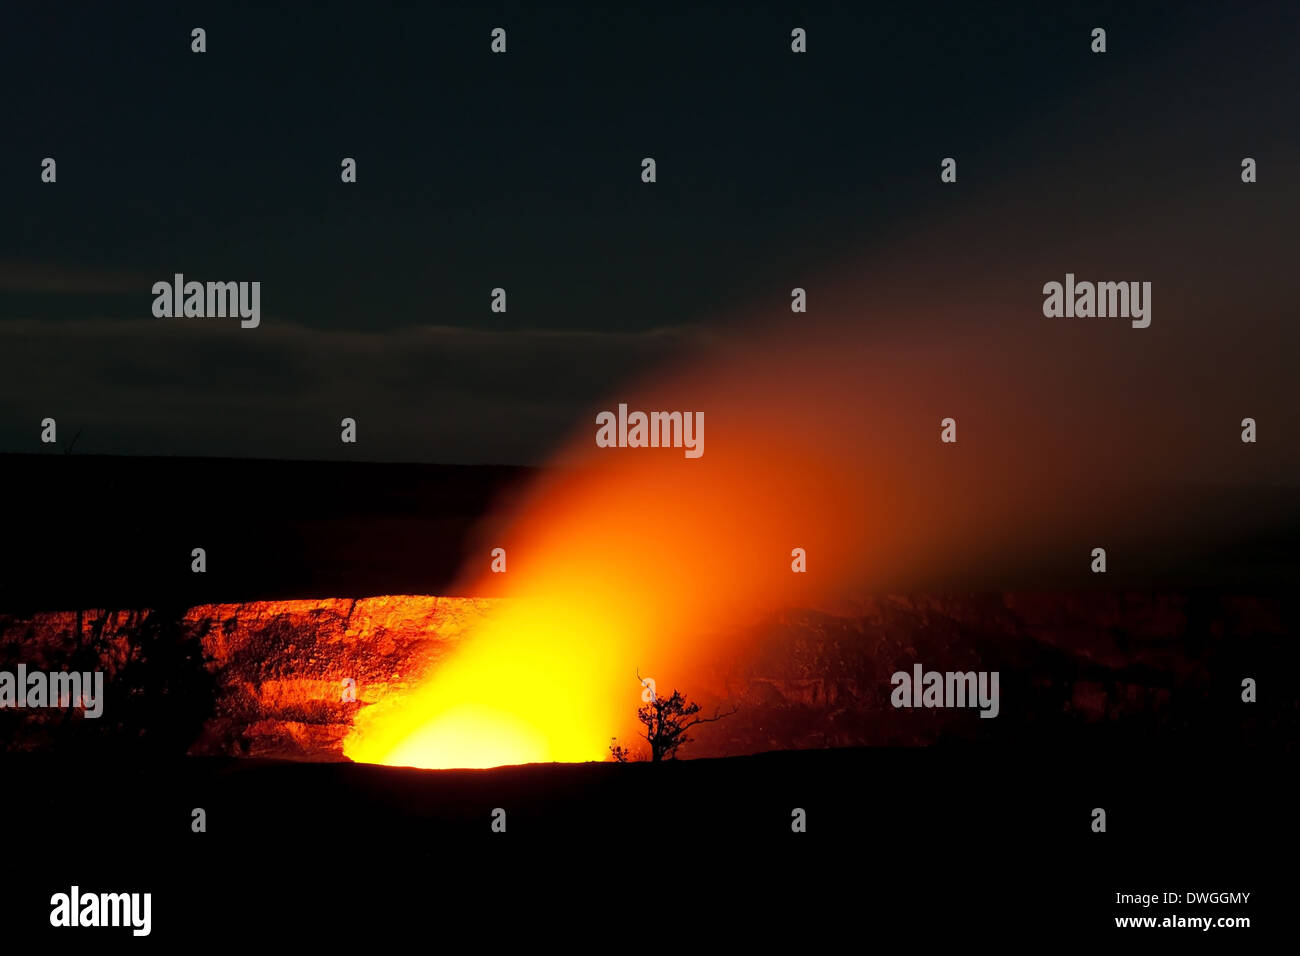 Smoking Crater of Halemaumau Kilauea Volcano in Hawaii Volcanoes National Park on Big Island at night - Stock Image